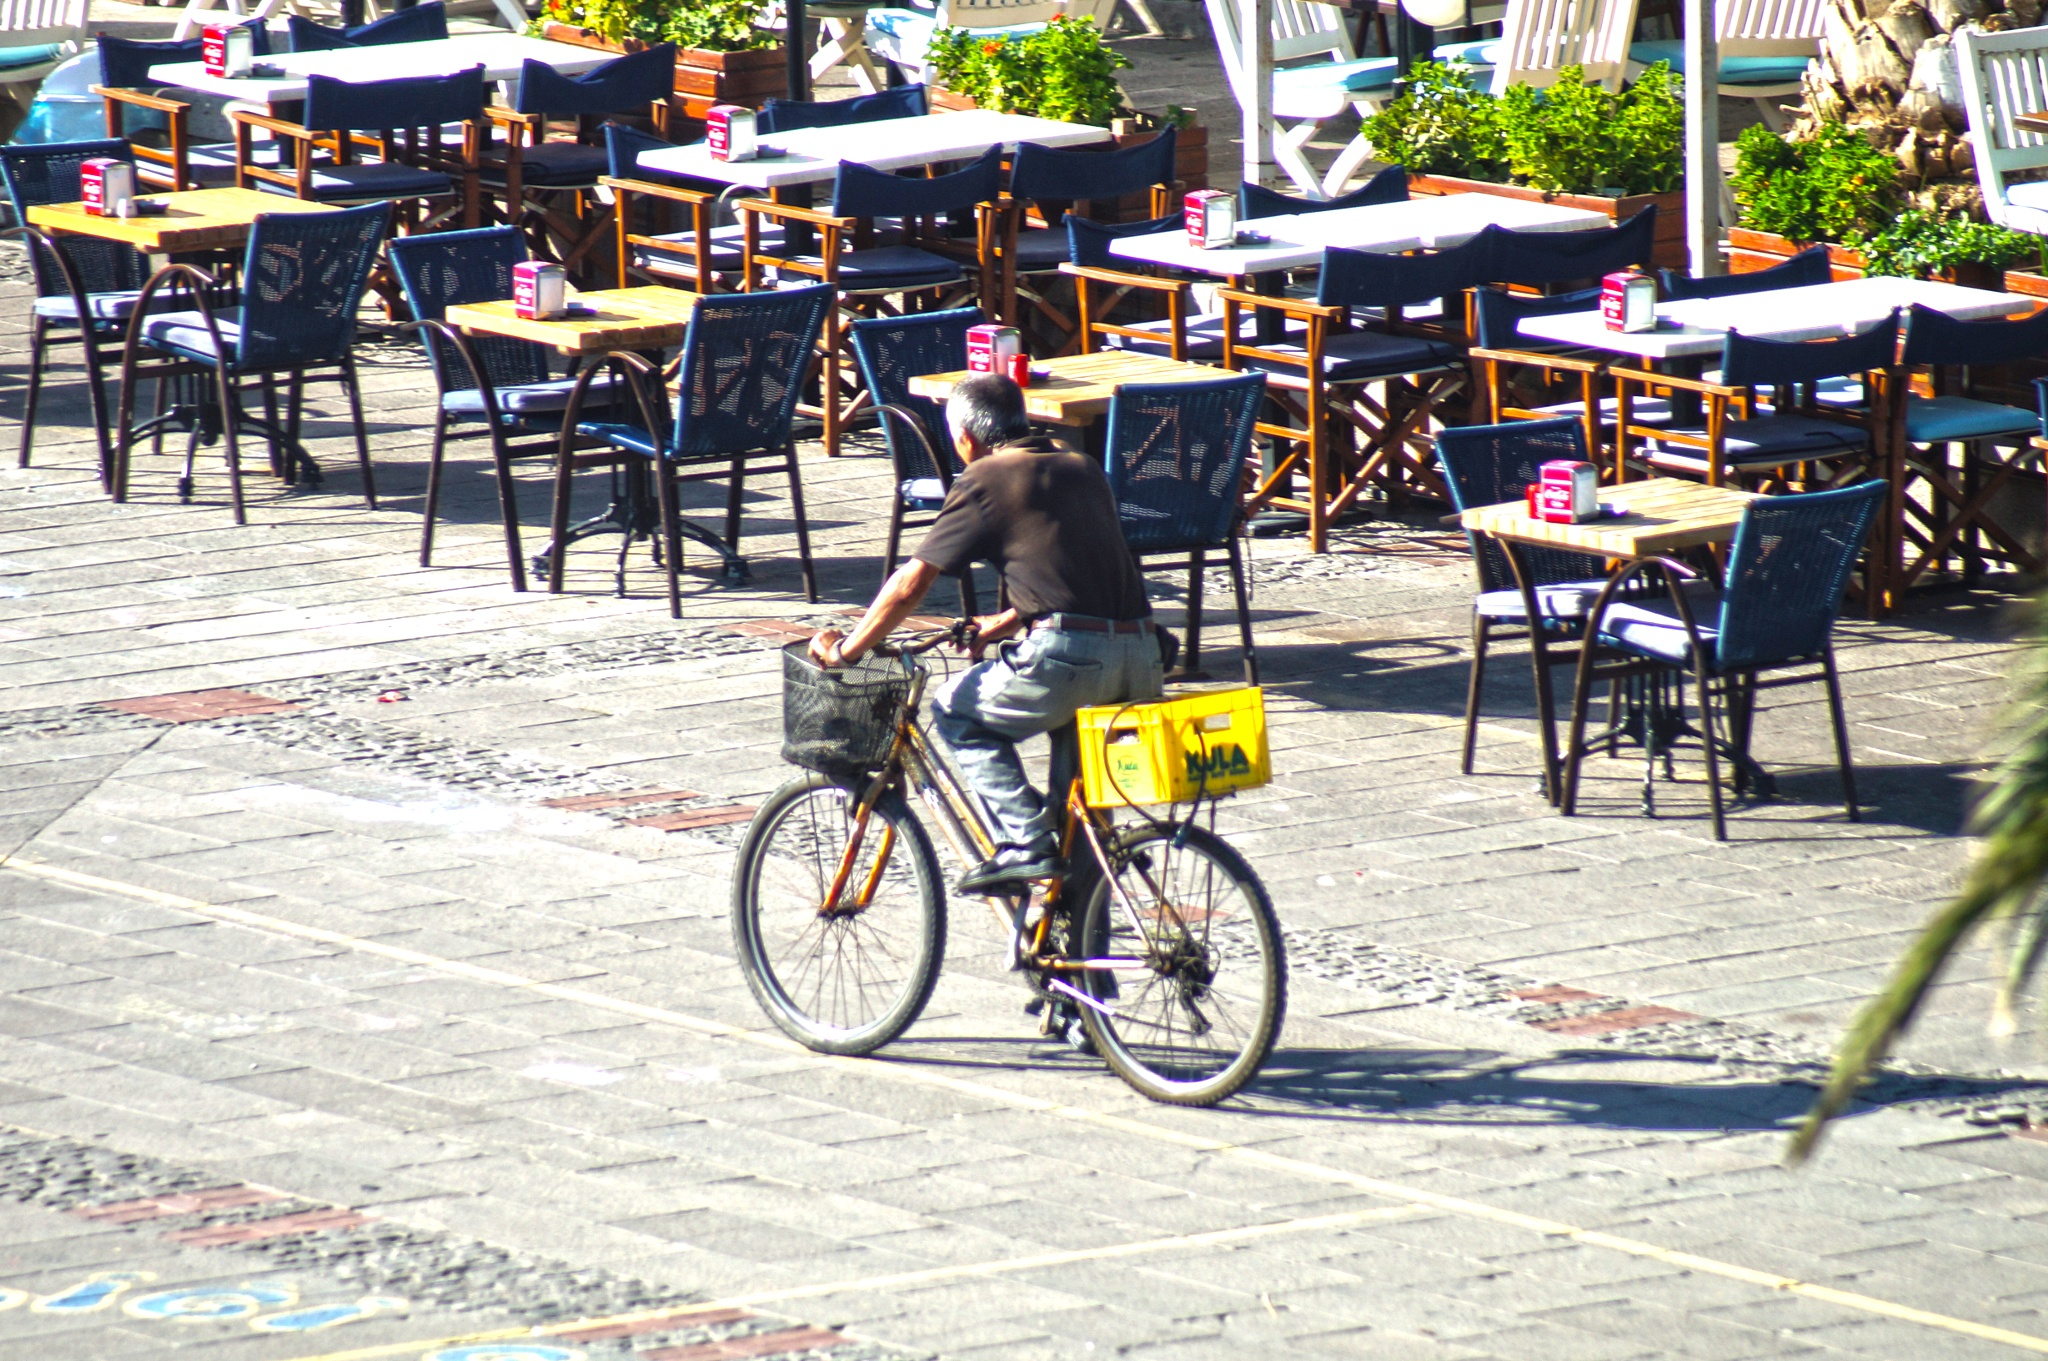 Foça Bikers by Blackhawk